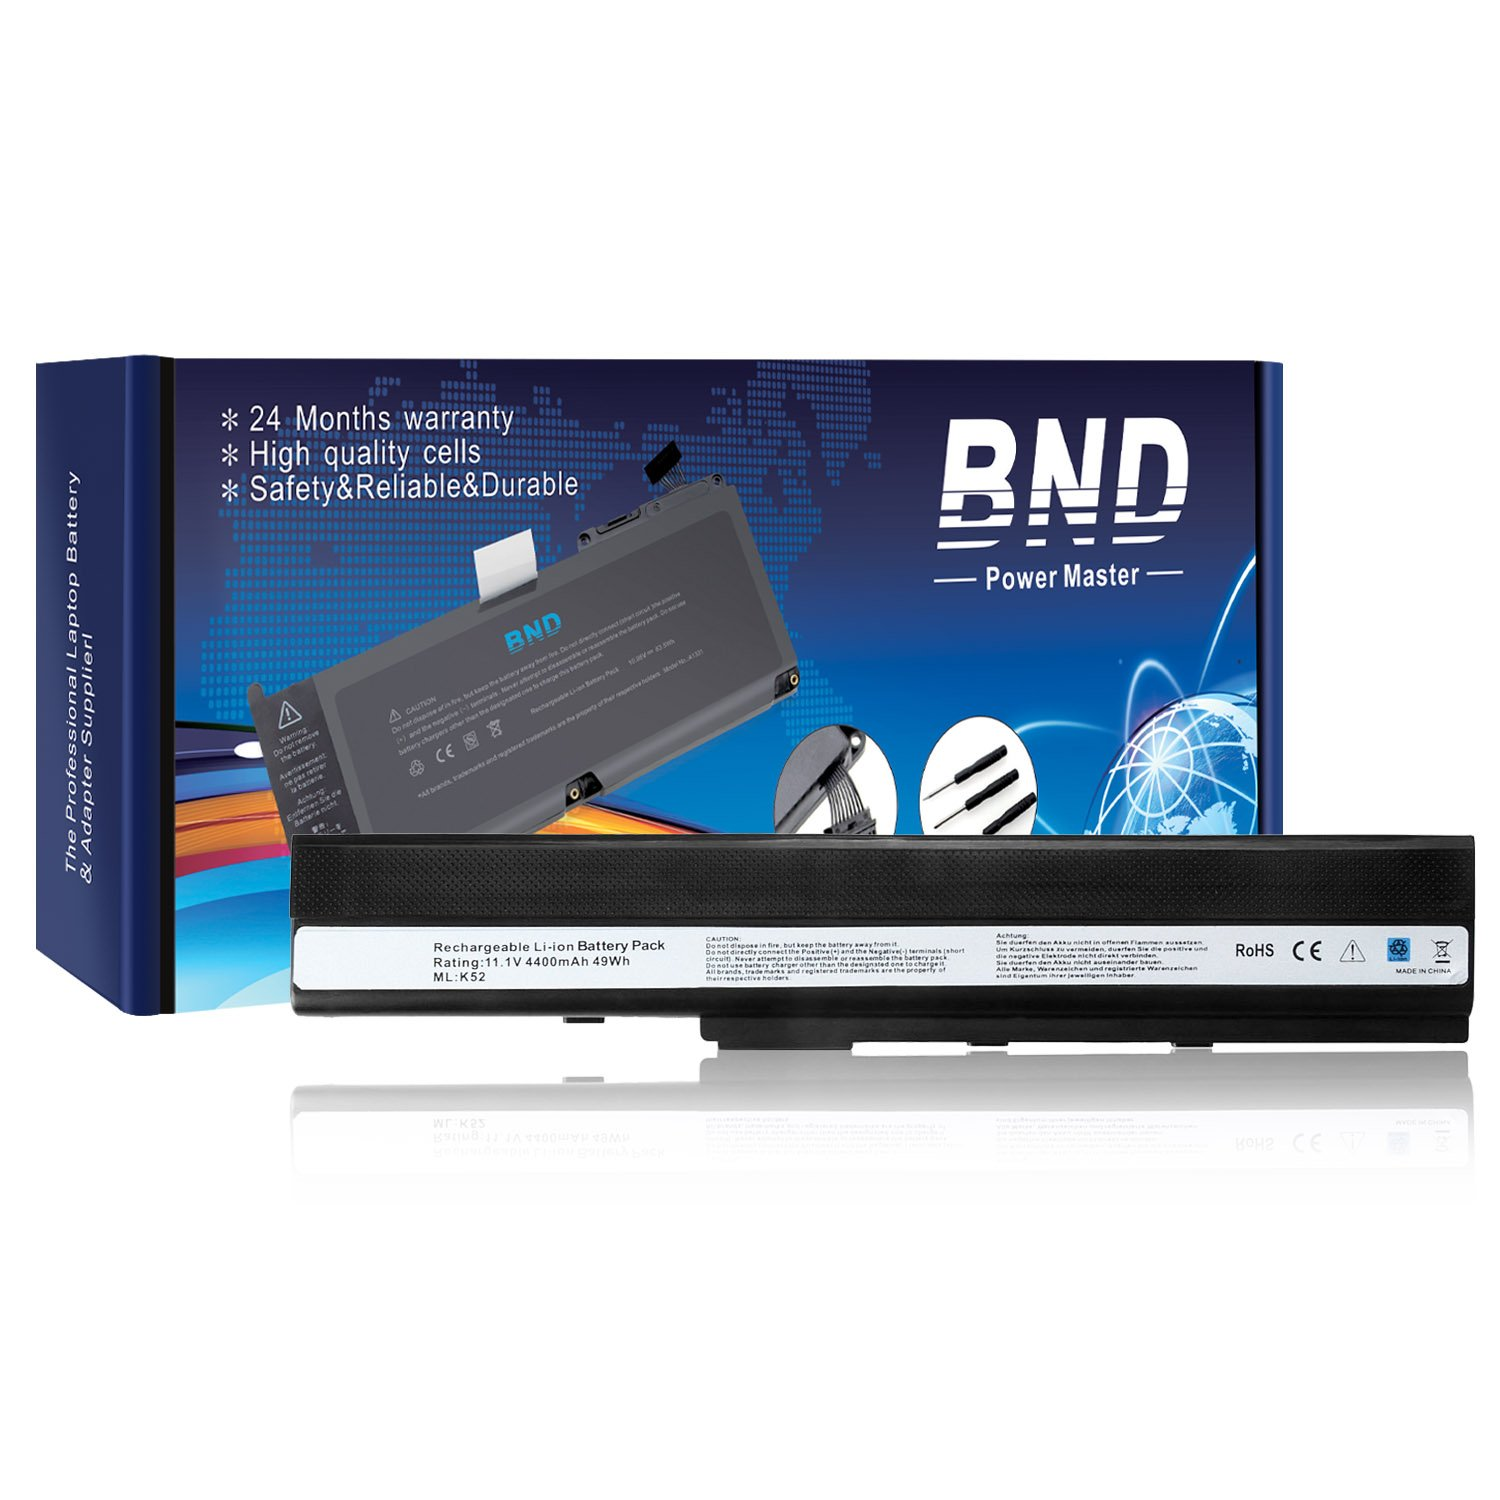 BND Laptop Battery for ASUS A52F A52J A52 K52F K42 K42J K52 K52J K52JR K52JC, fits Asus K52L681 A31-K52 A32-K52 A41-K52 - 12 Months Warranty [6-Cell 4400mAh/49Wh]